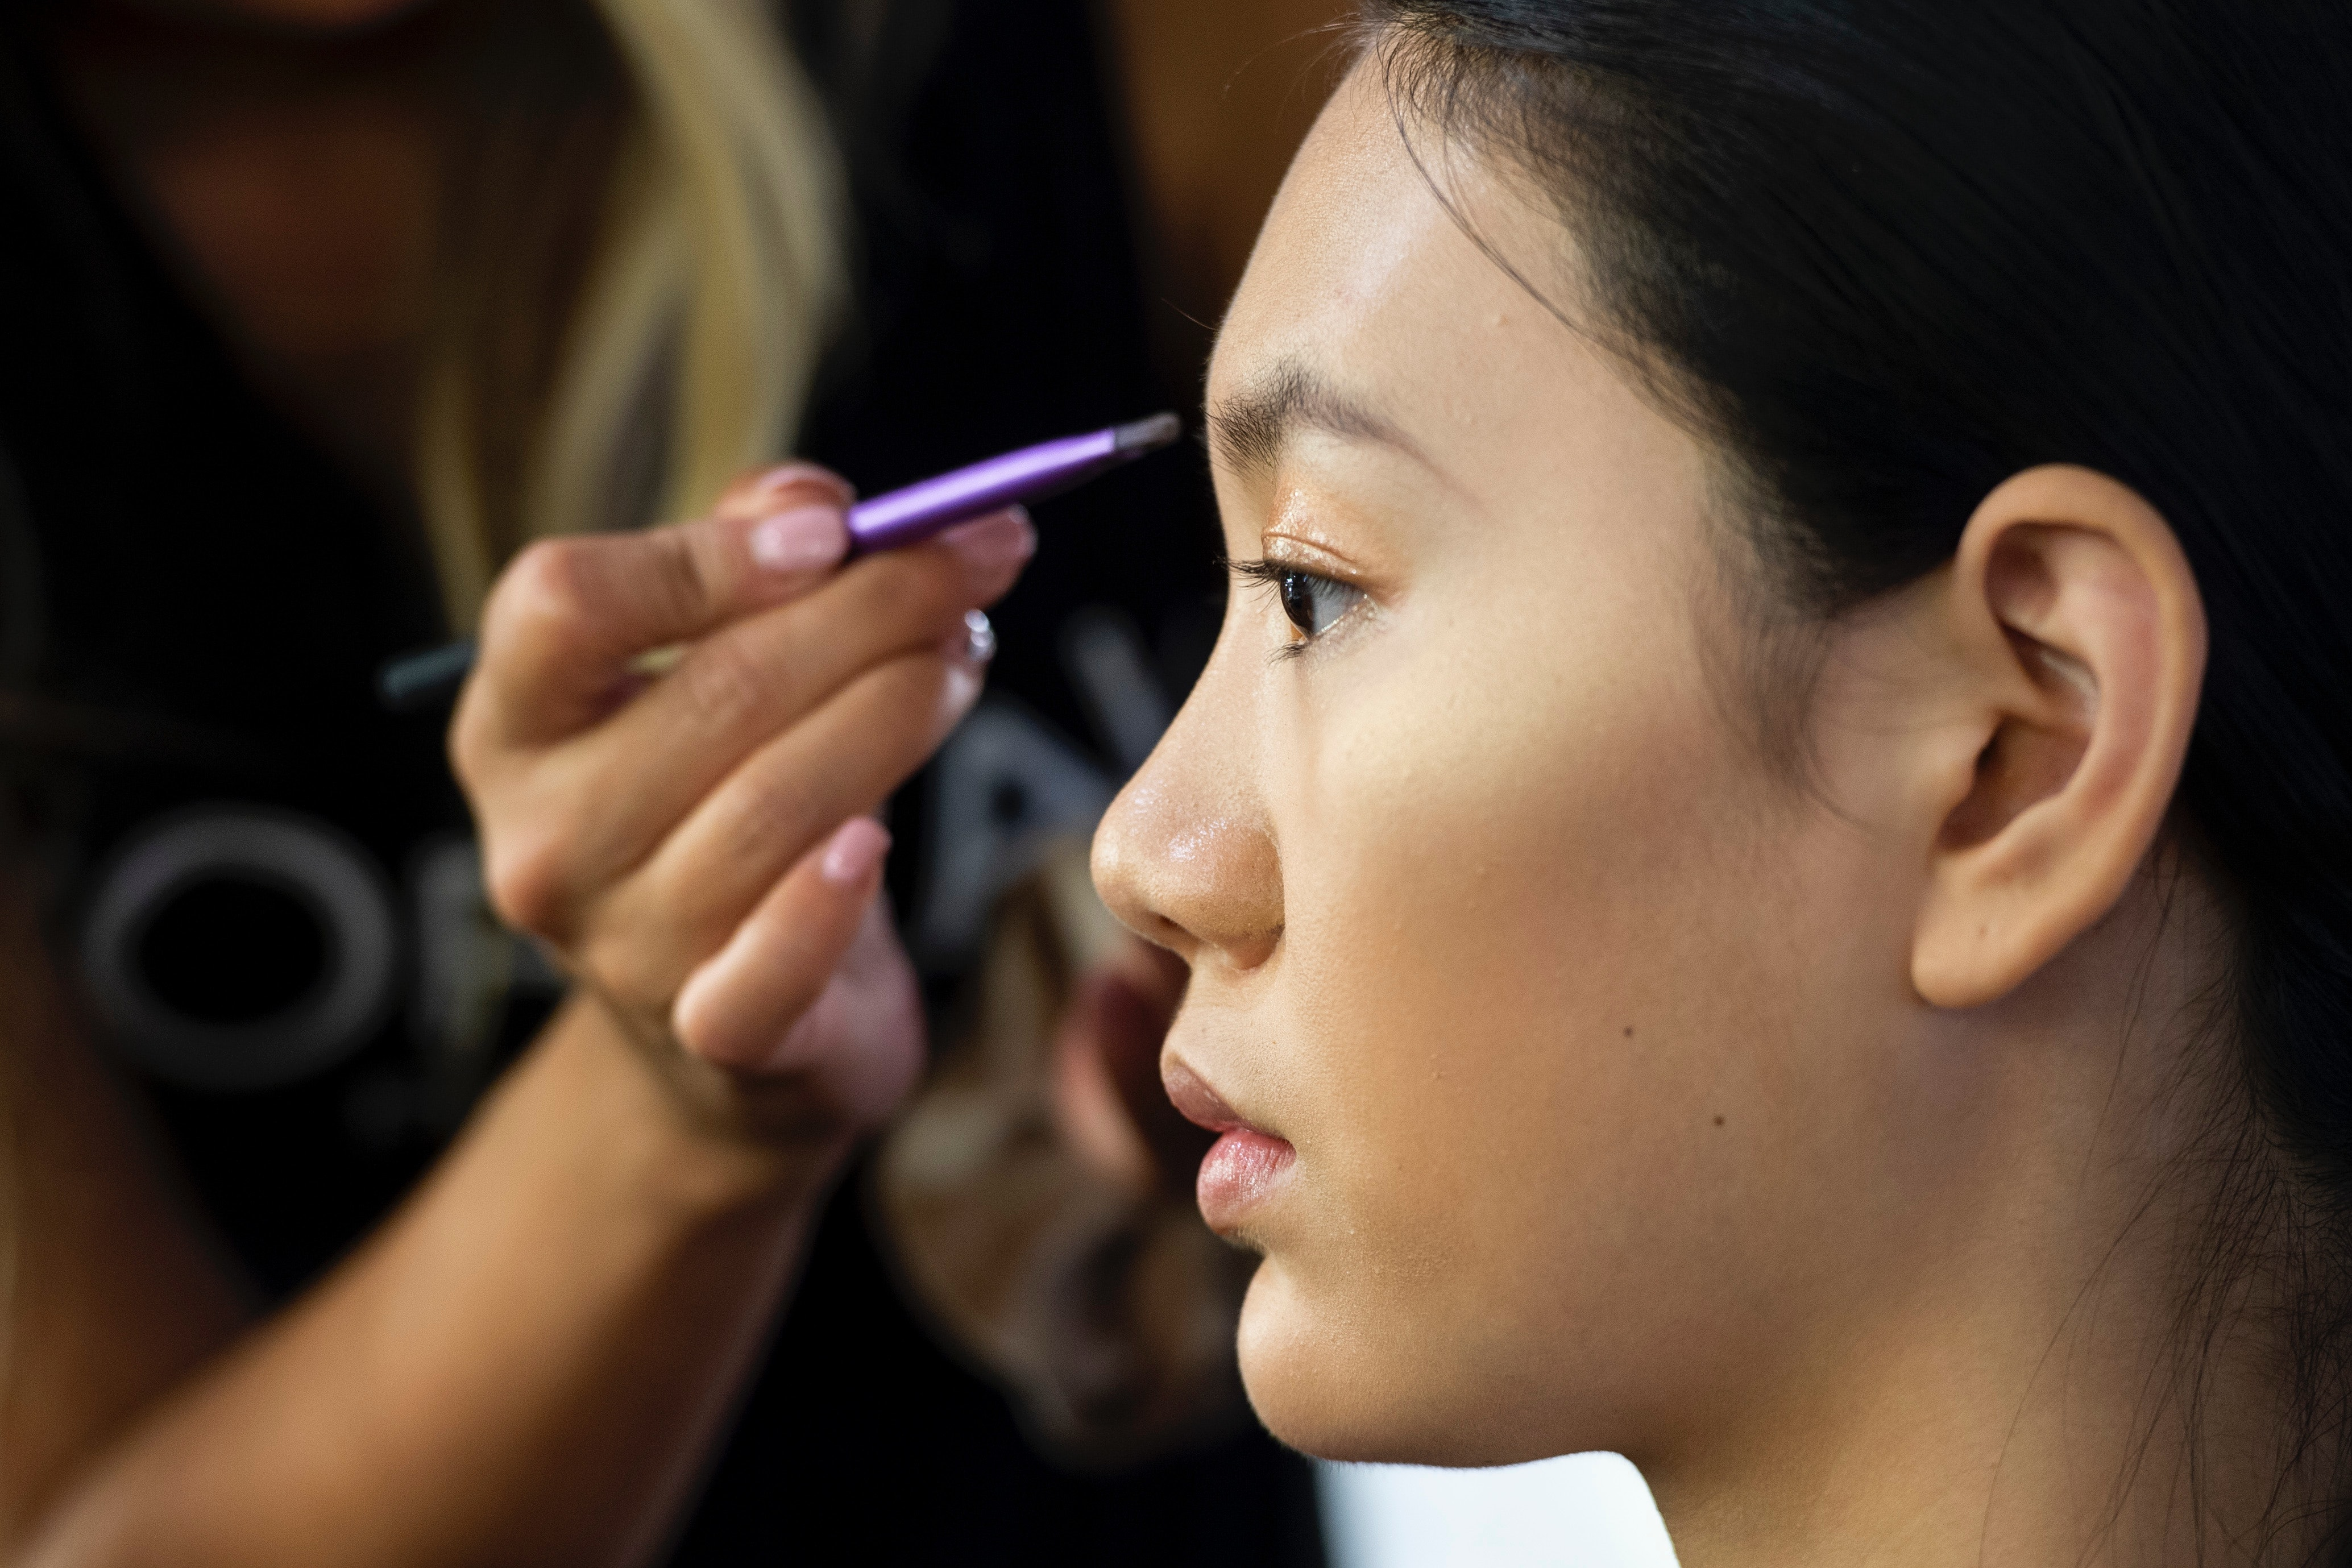 Does Brow Regrowth Serum Really Work? The Pros Explain